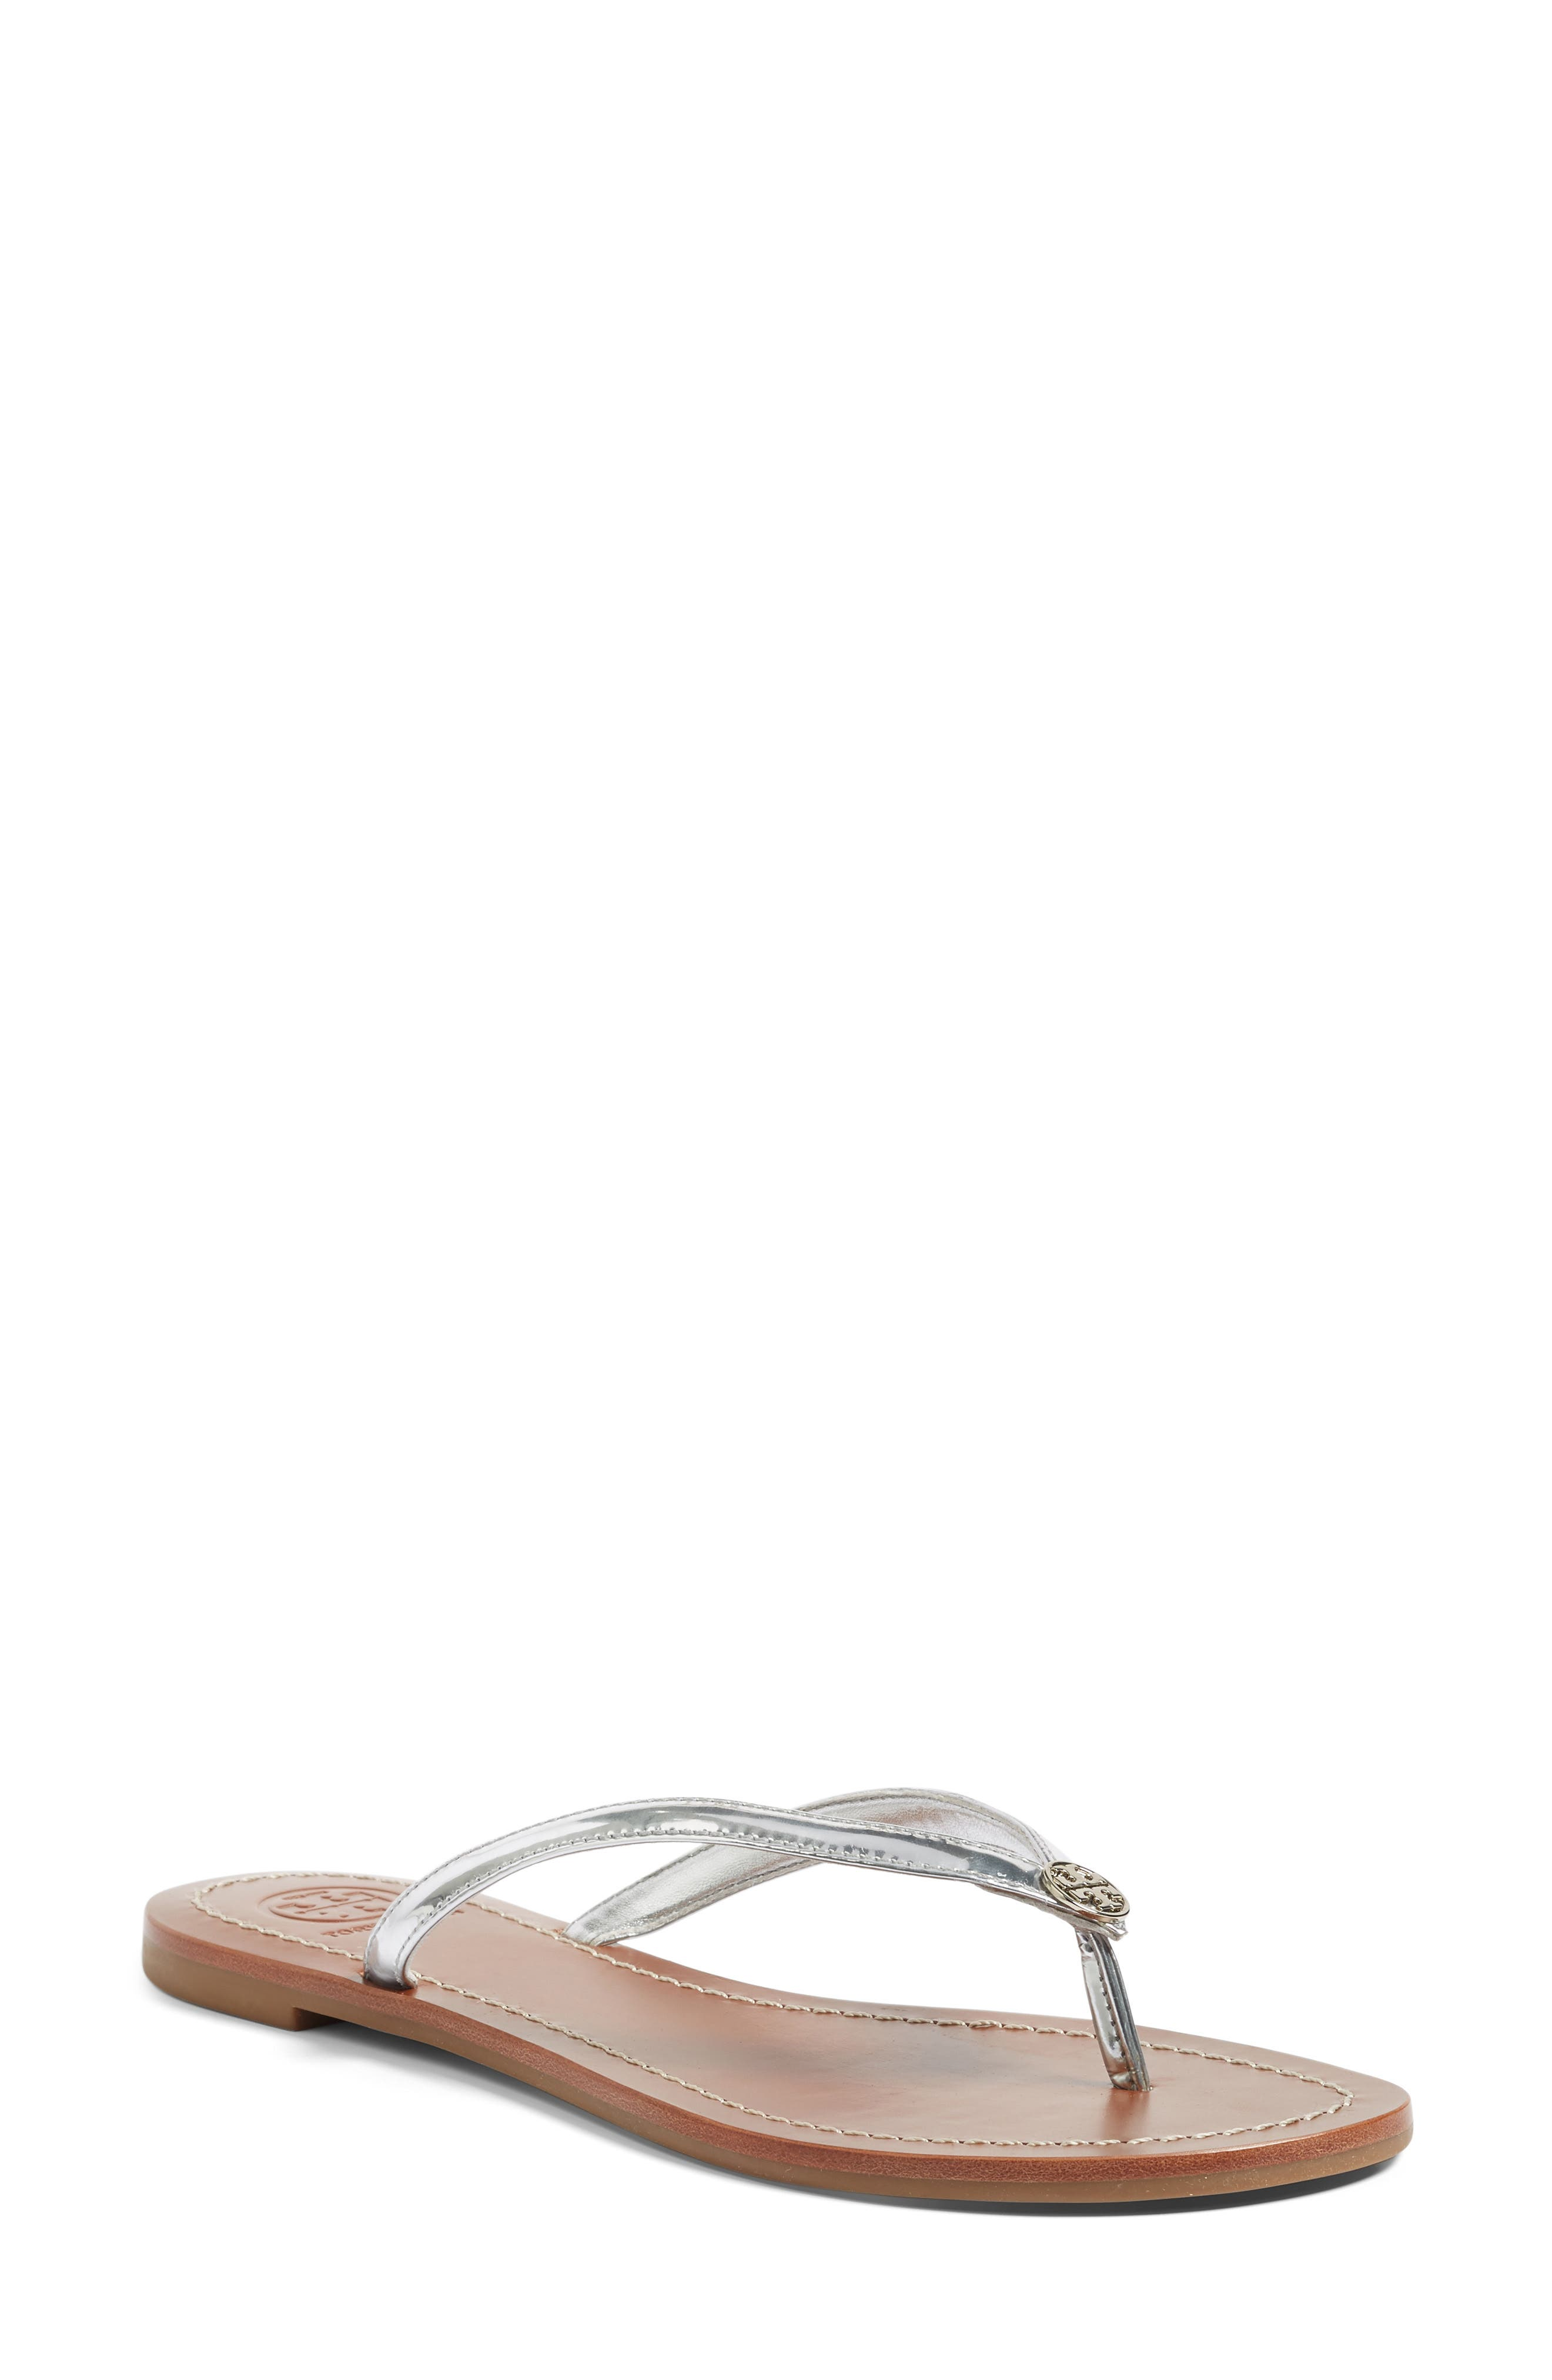 Alternate Image 1 Selected - Tory Burch 'Terra' Flip Flop (Women)